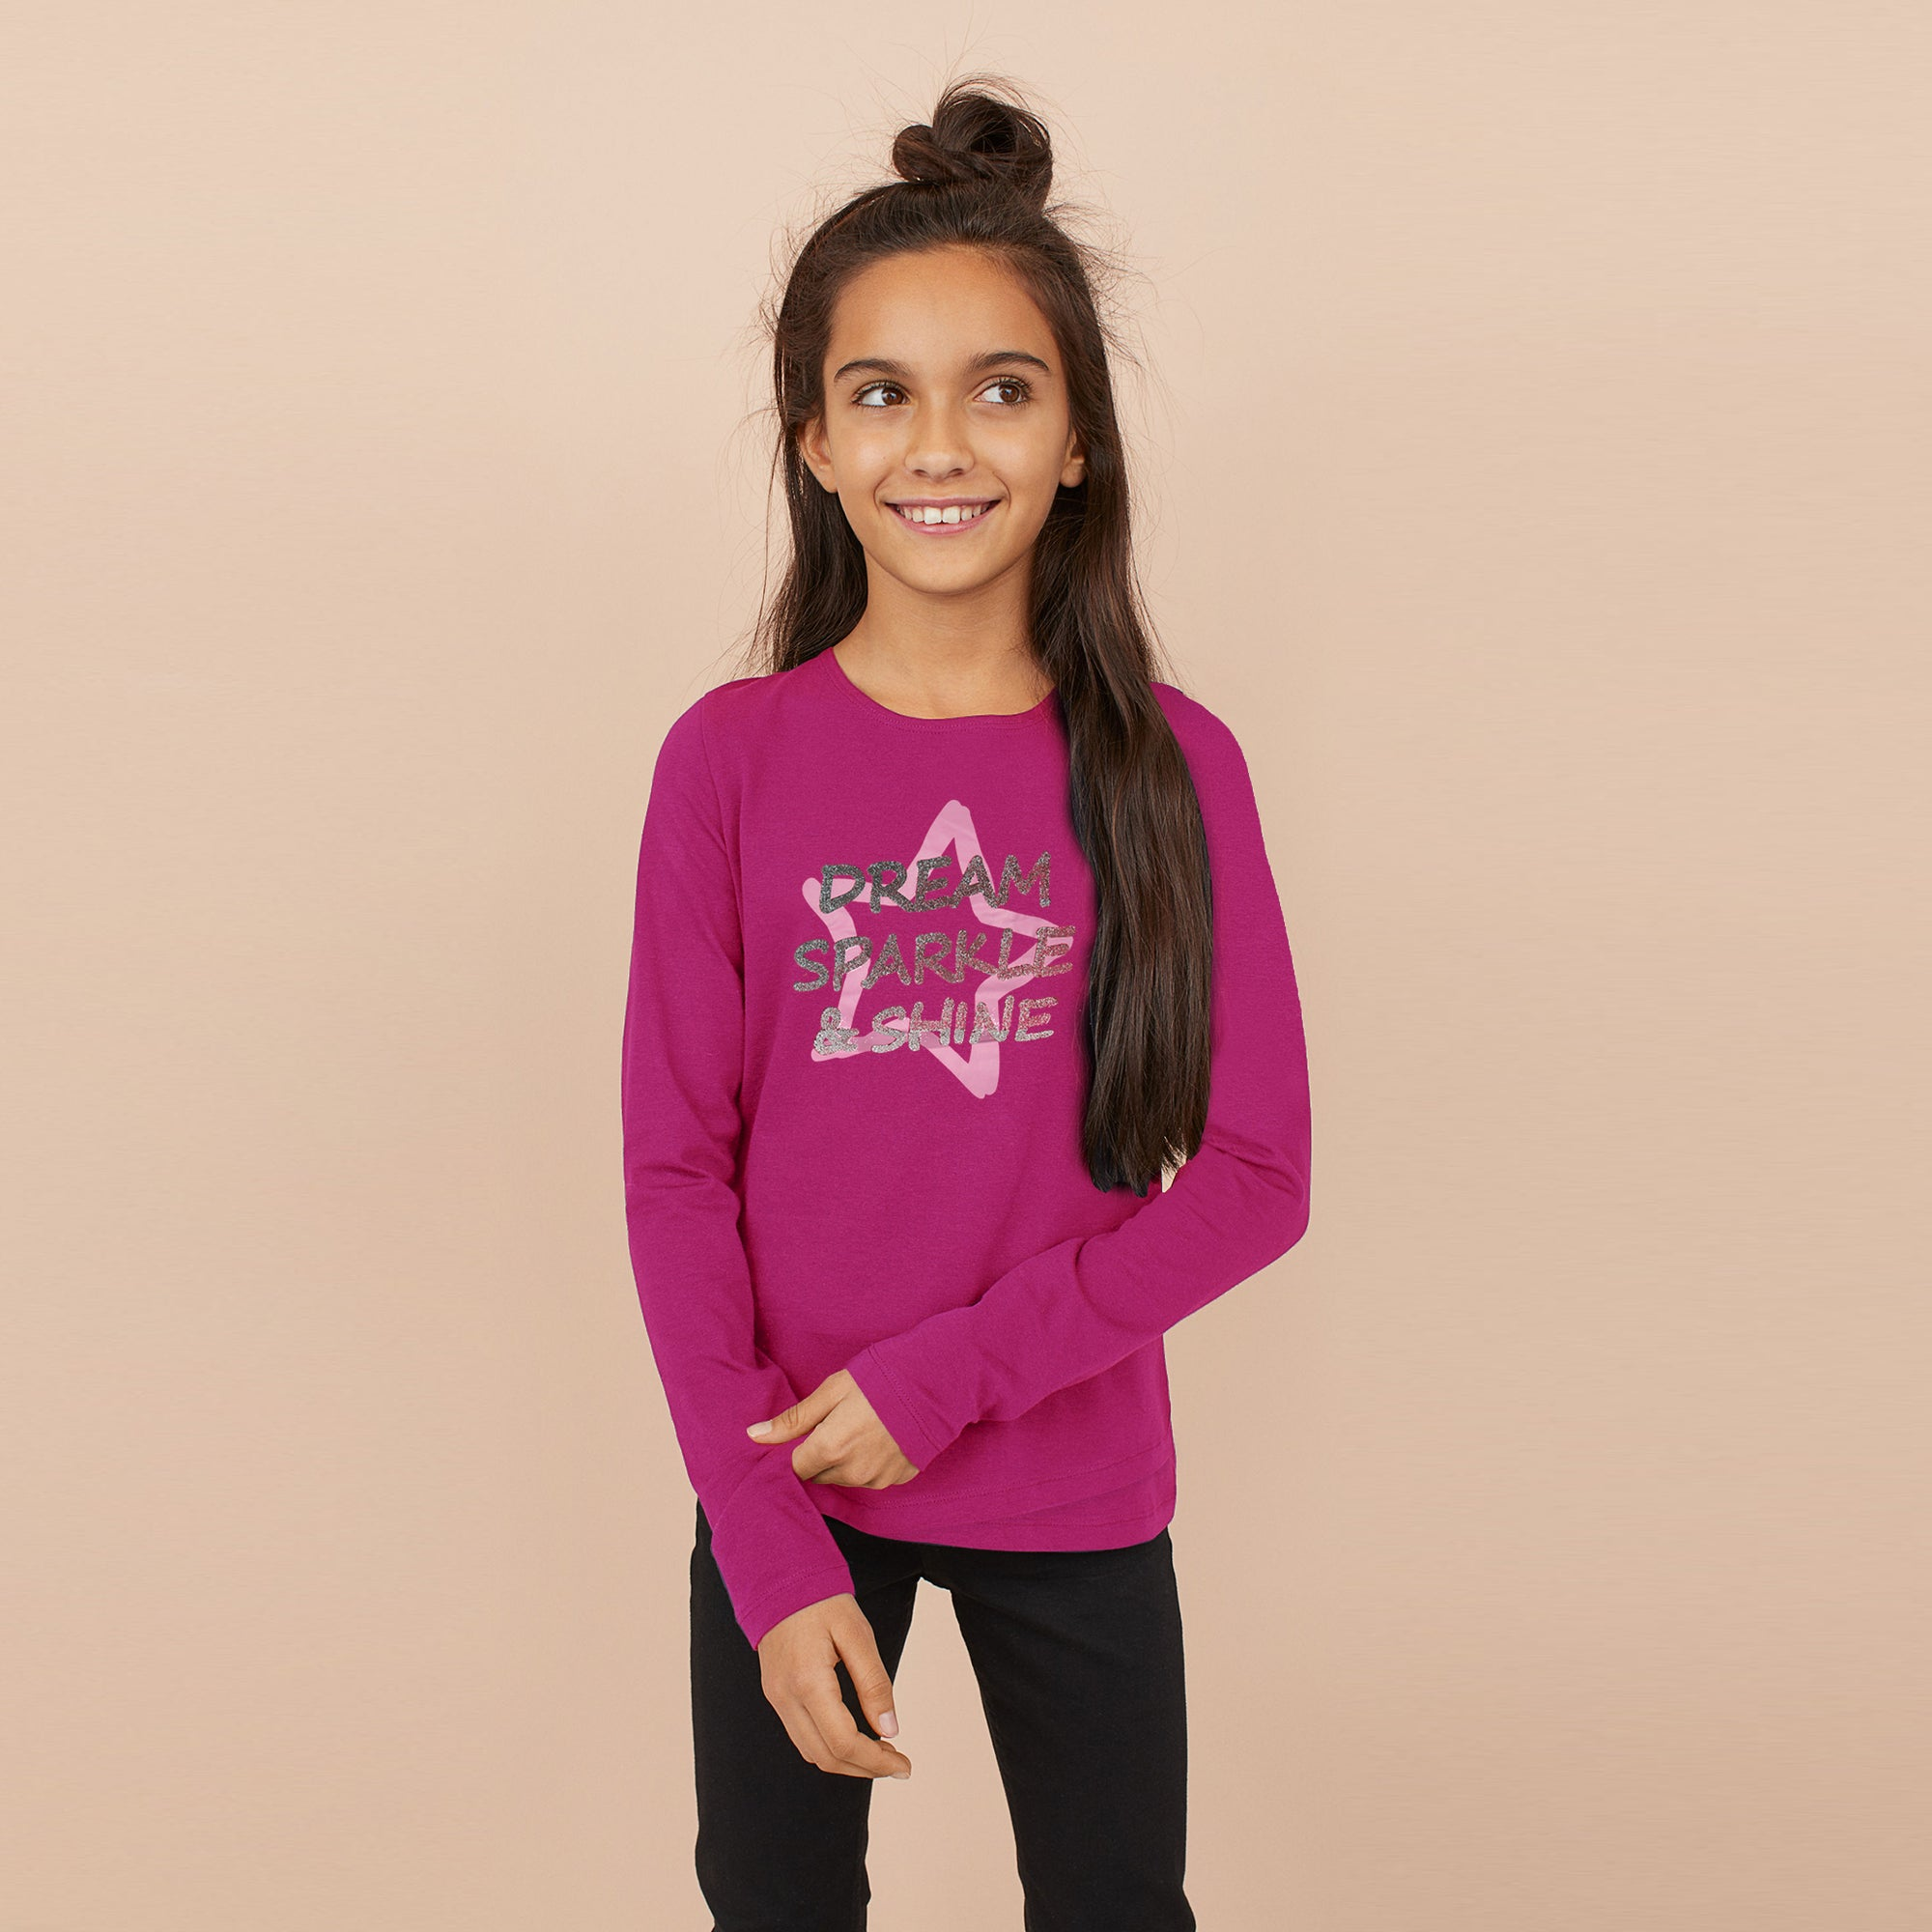 Next Crew Neck Single Jersey Tee Shirt For Kids-Pink-BE6849